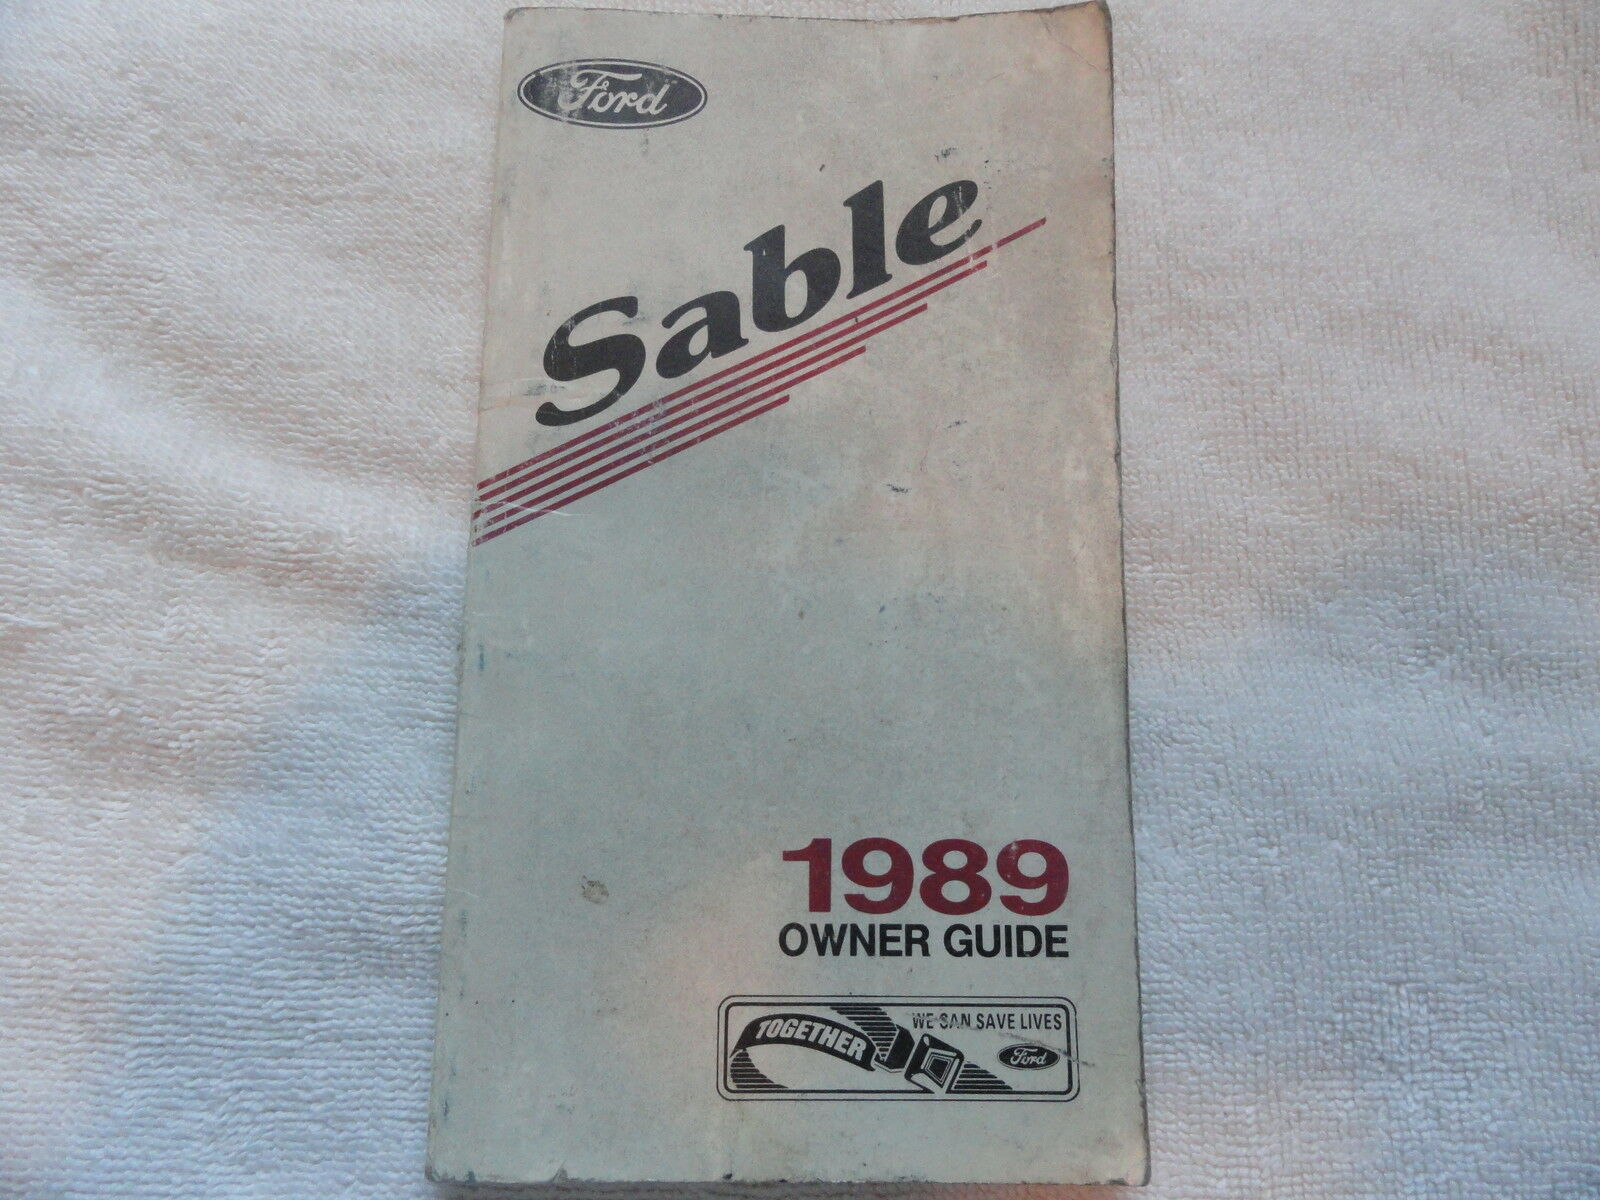 1989 Mercury Sable Owners Manual 1 of 1Only 2 available ...